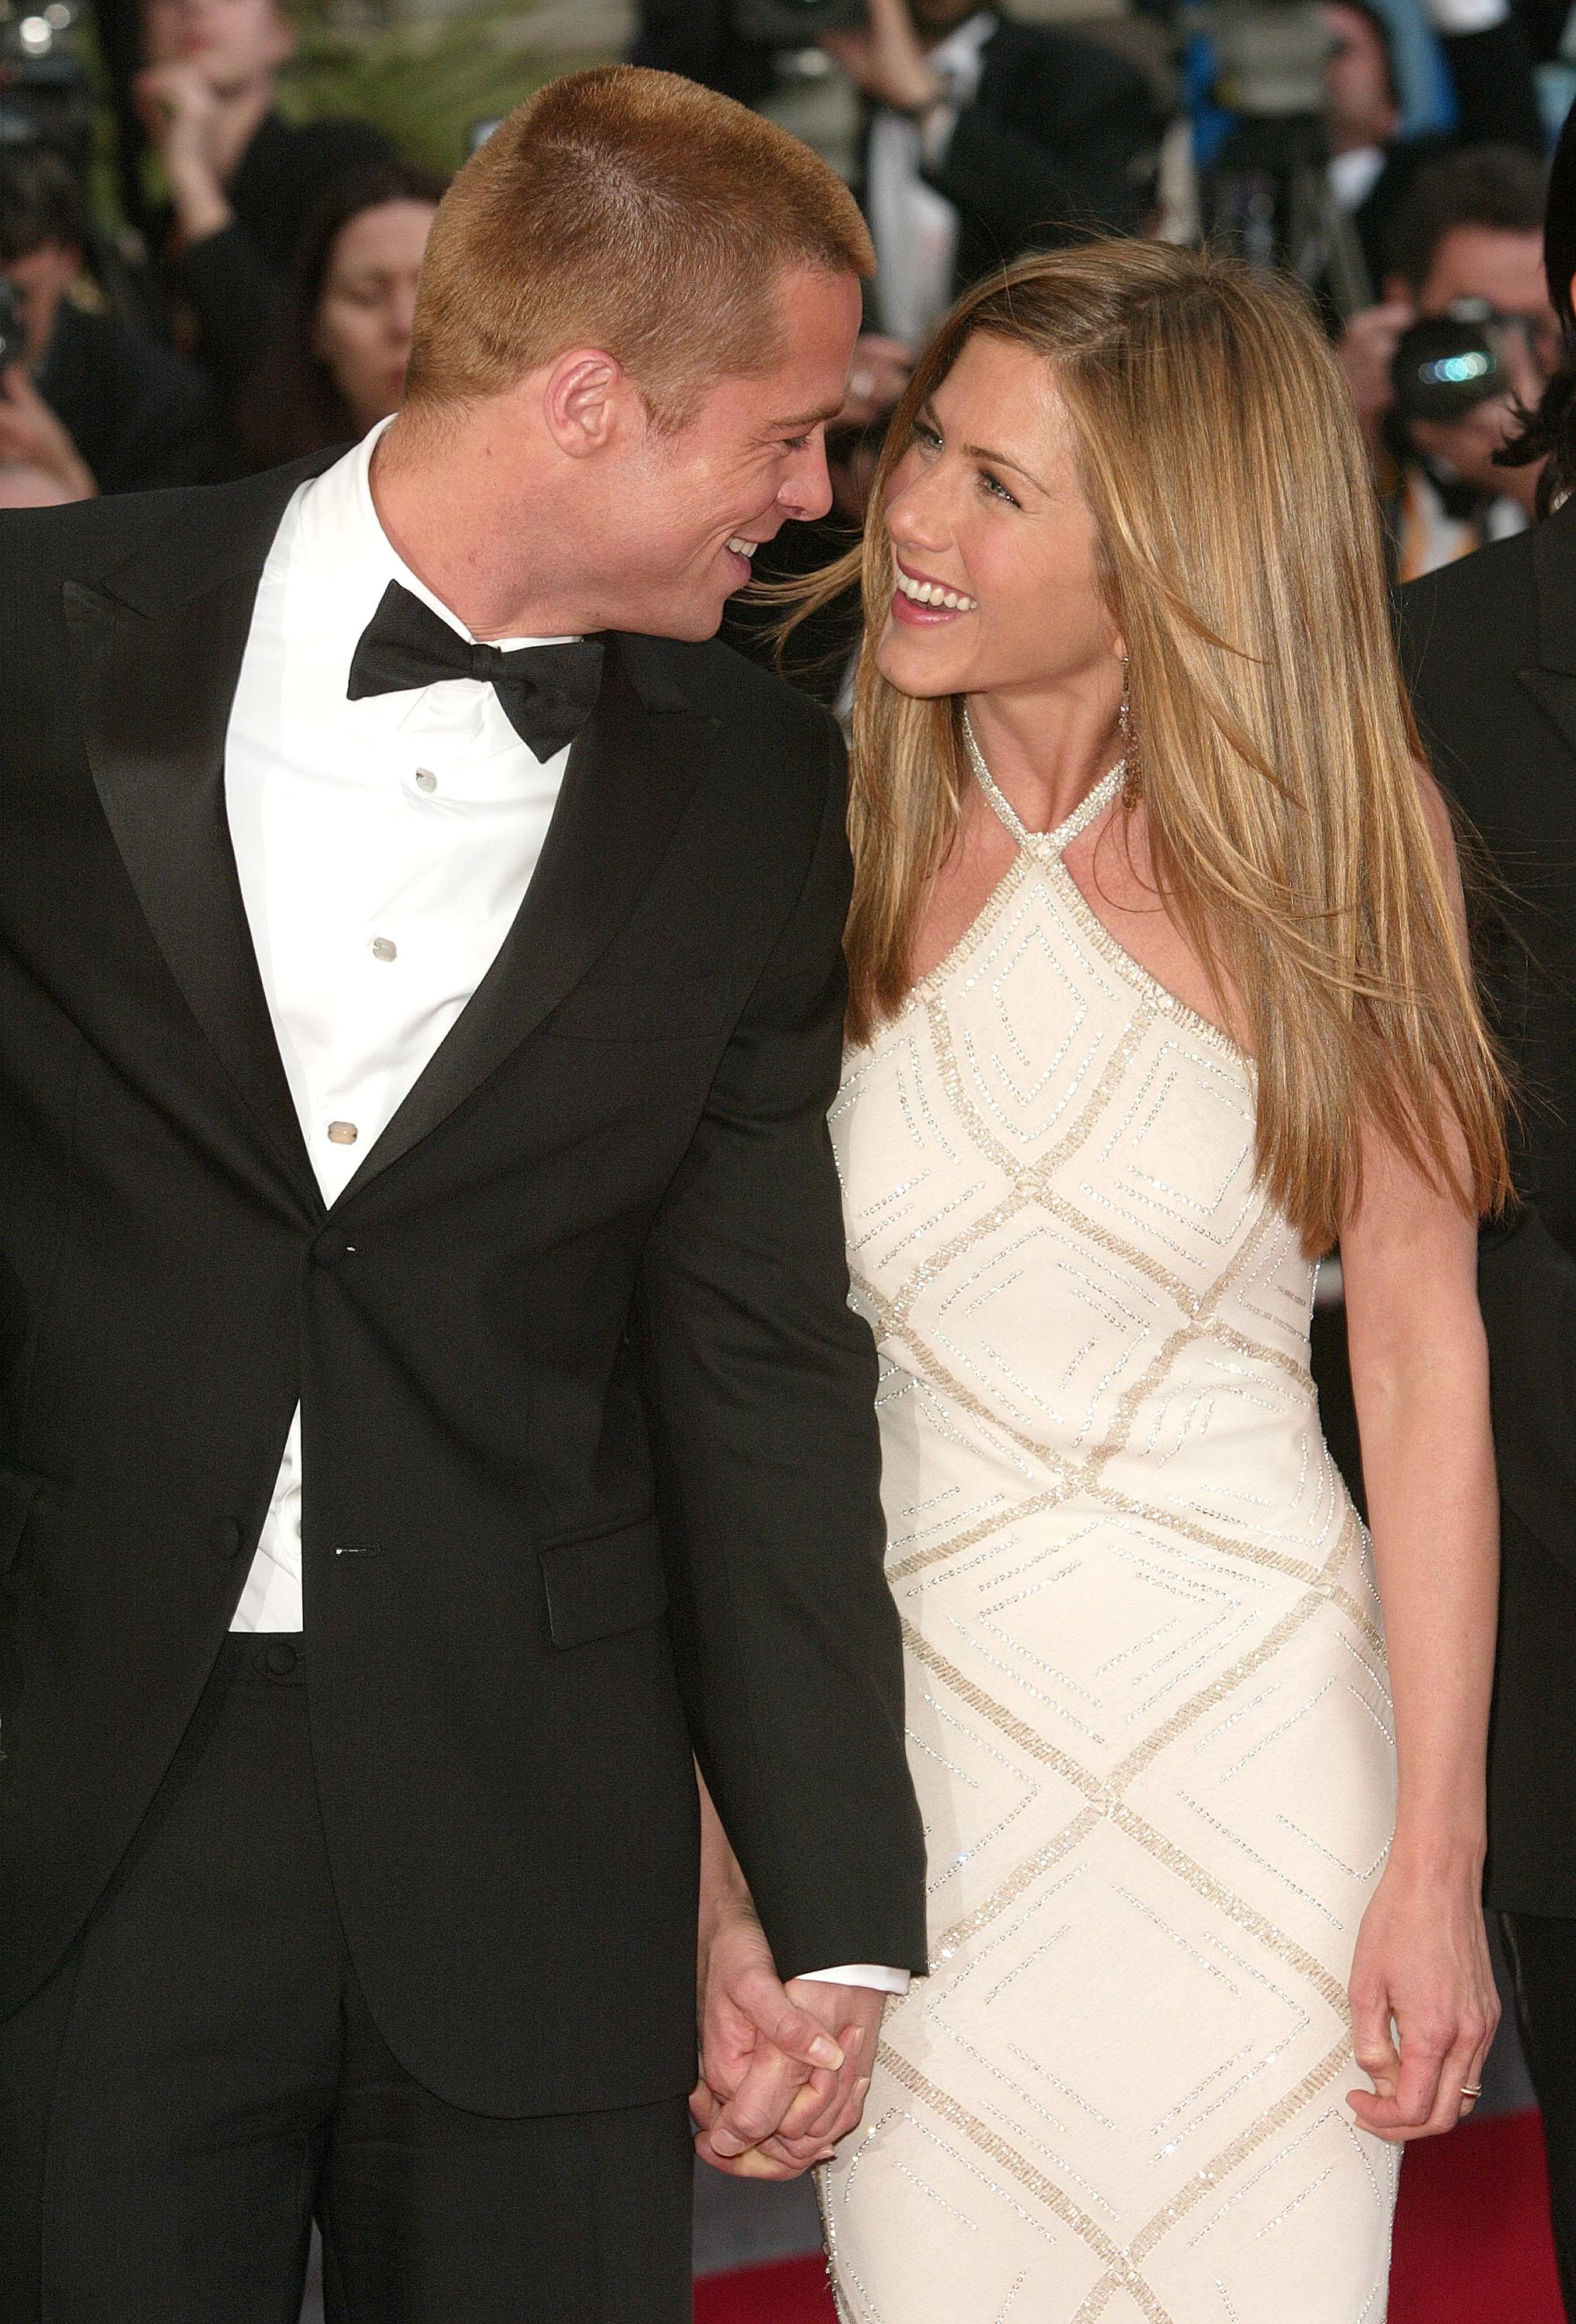 Brad Pitt and Jennifer Aniston when they were married (Source: Getty Images)